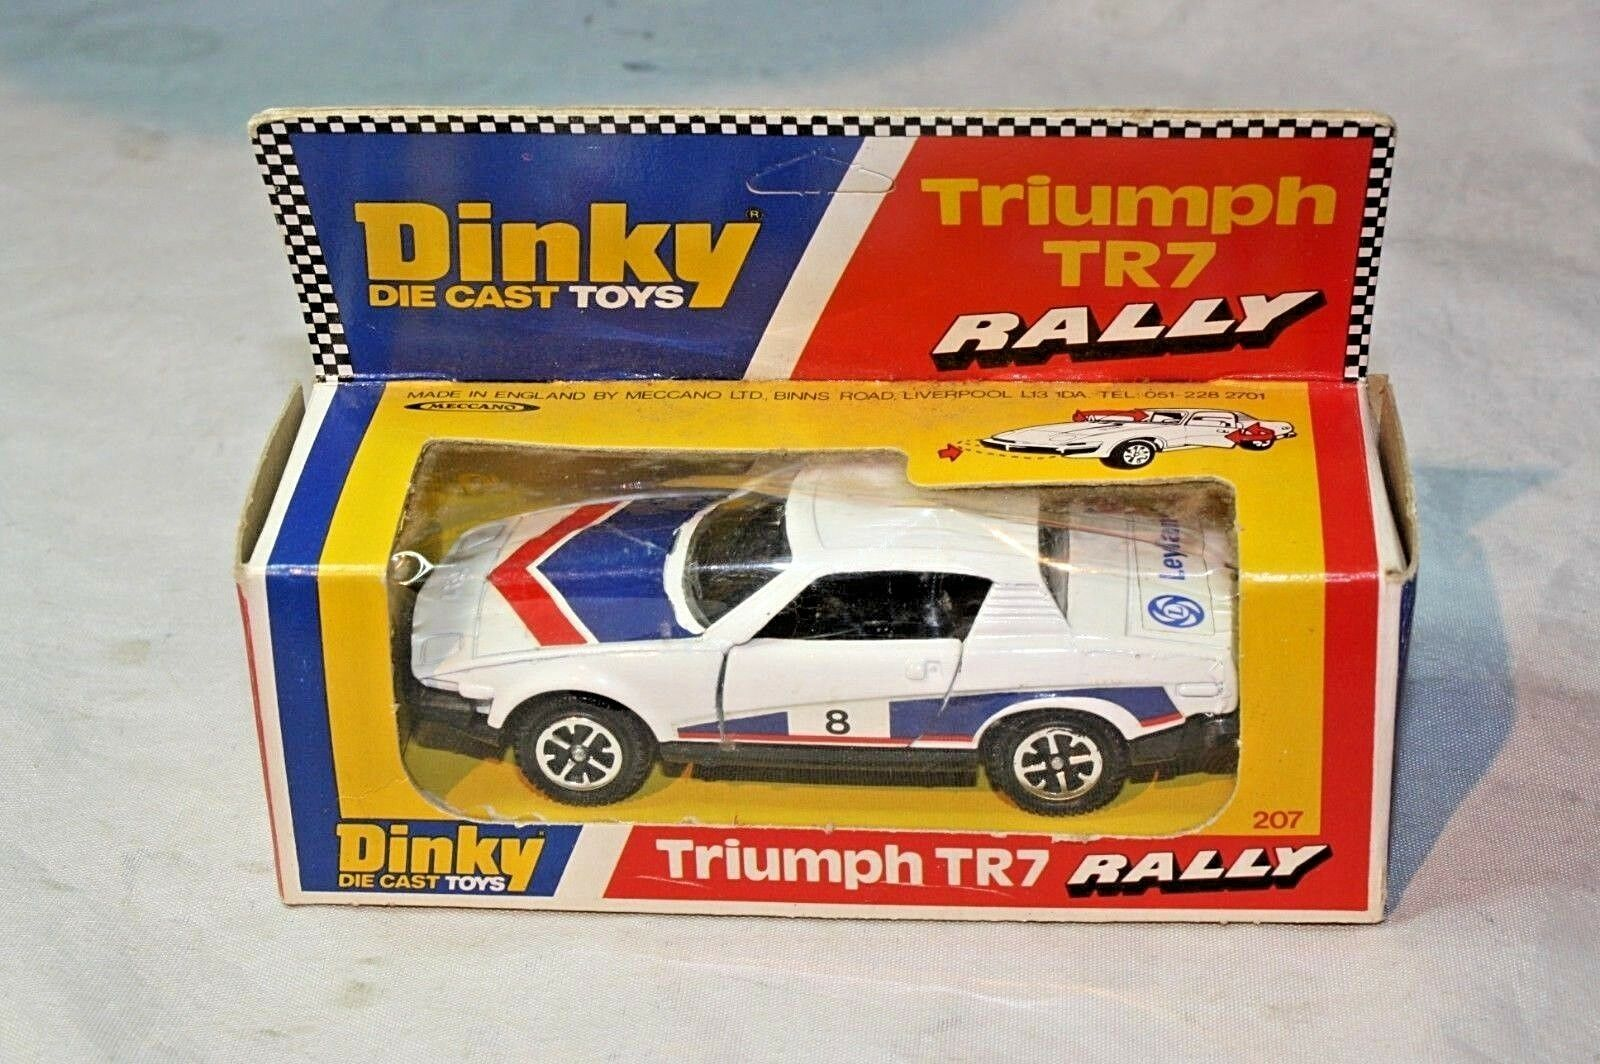 Dinky 207 Triumph TR7 Rally Car, Mint Condition in Excellent Original Box